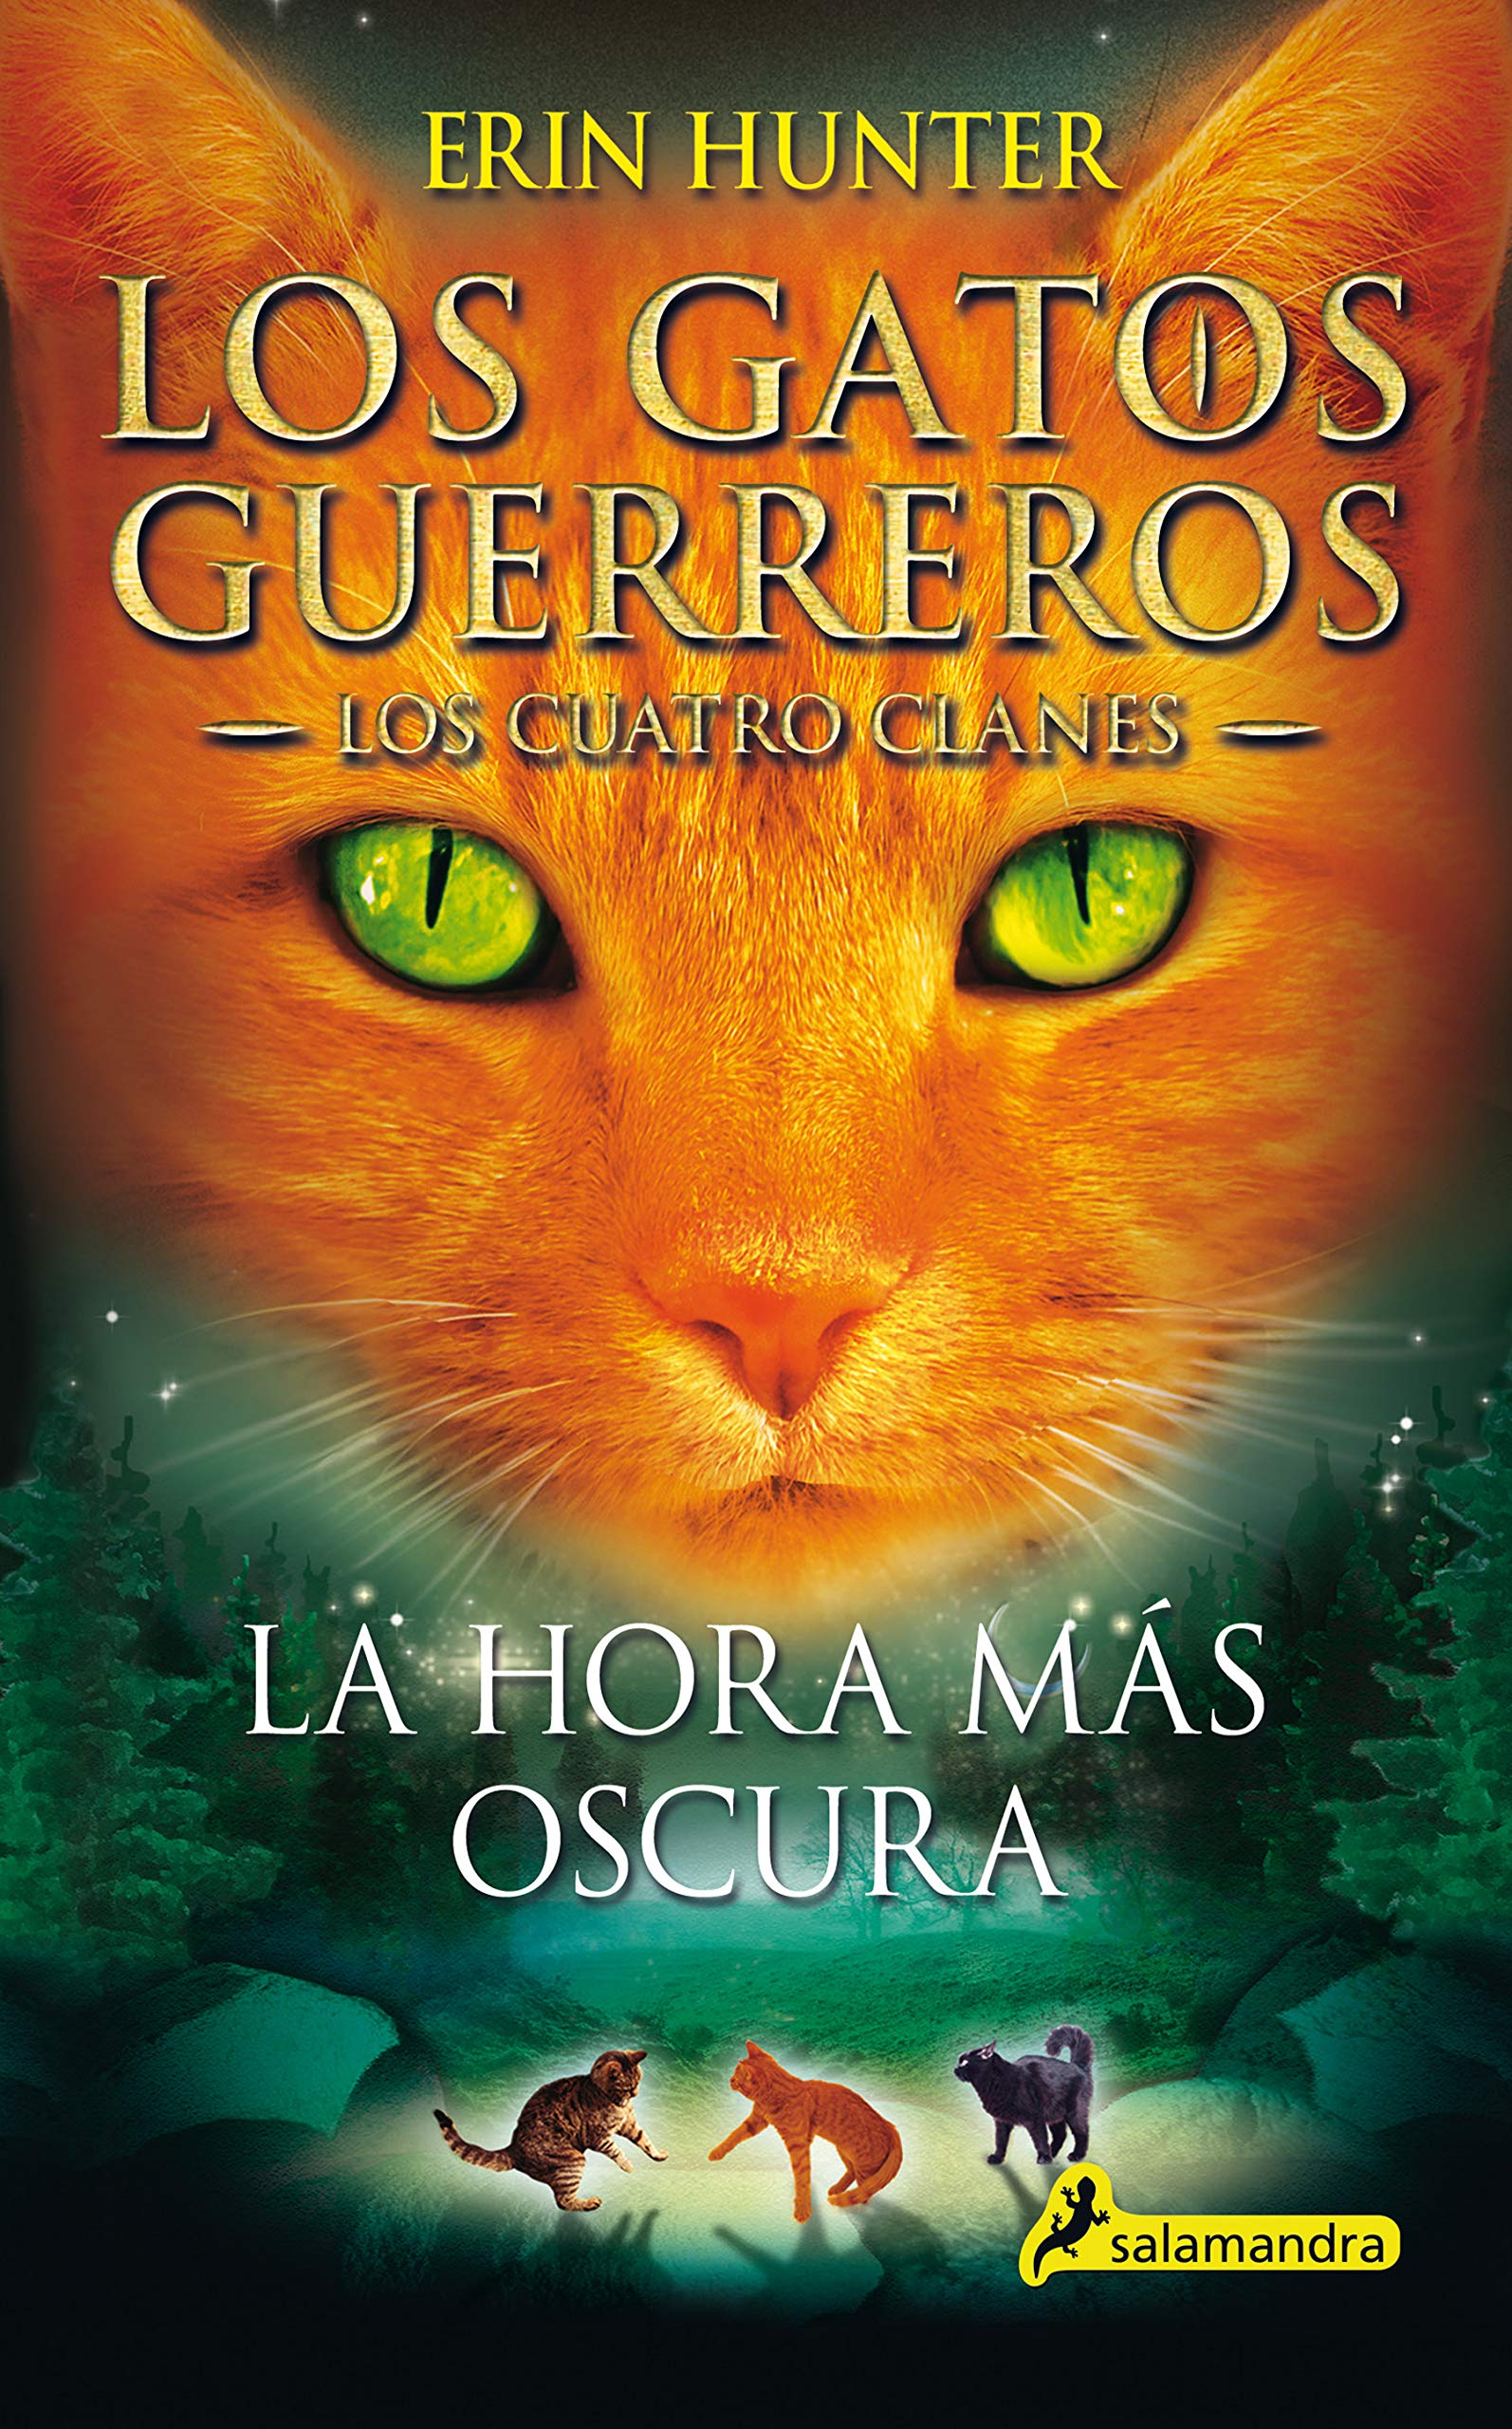 La Hora Más Oscura The Darkest Hour Los Gatos Guerreros Warriors Spanish Edition 9788498385588 Hunter Erin Books